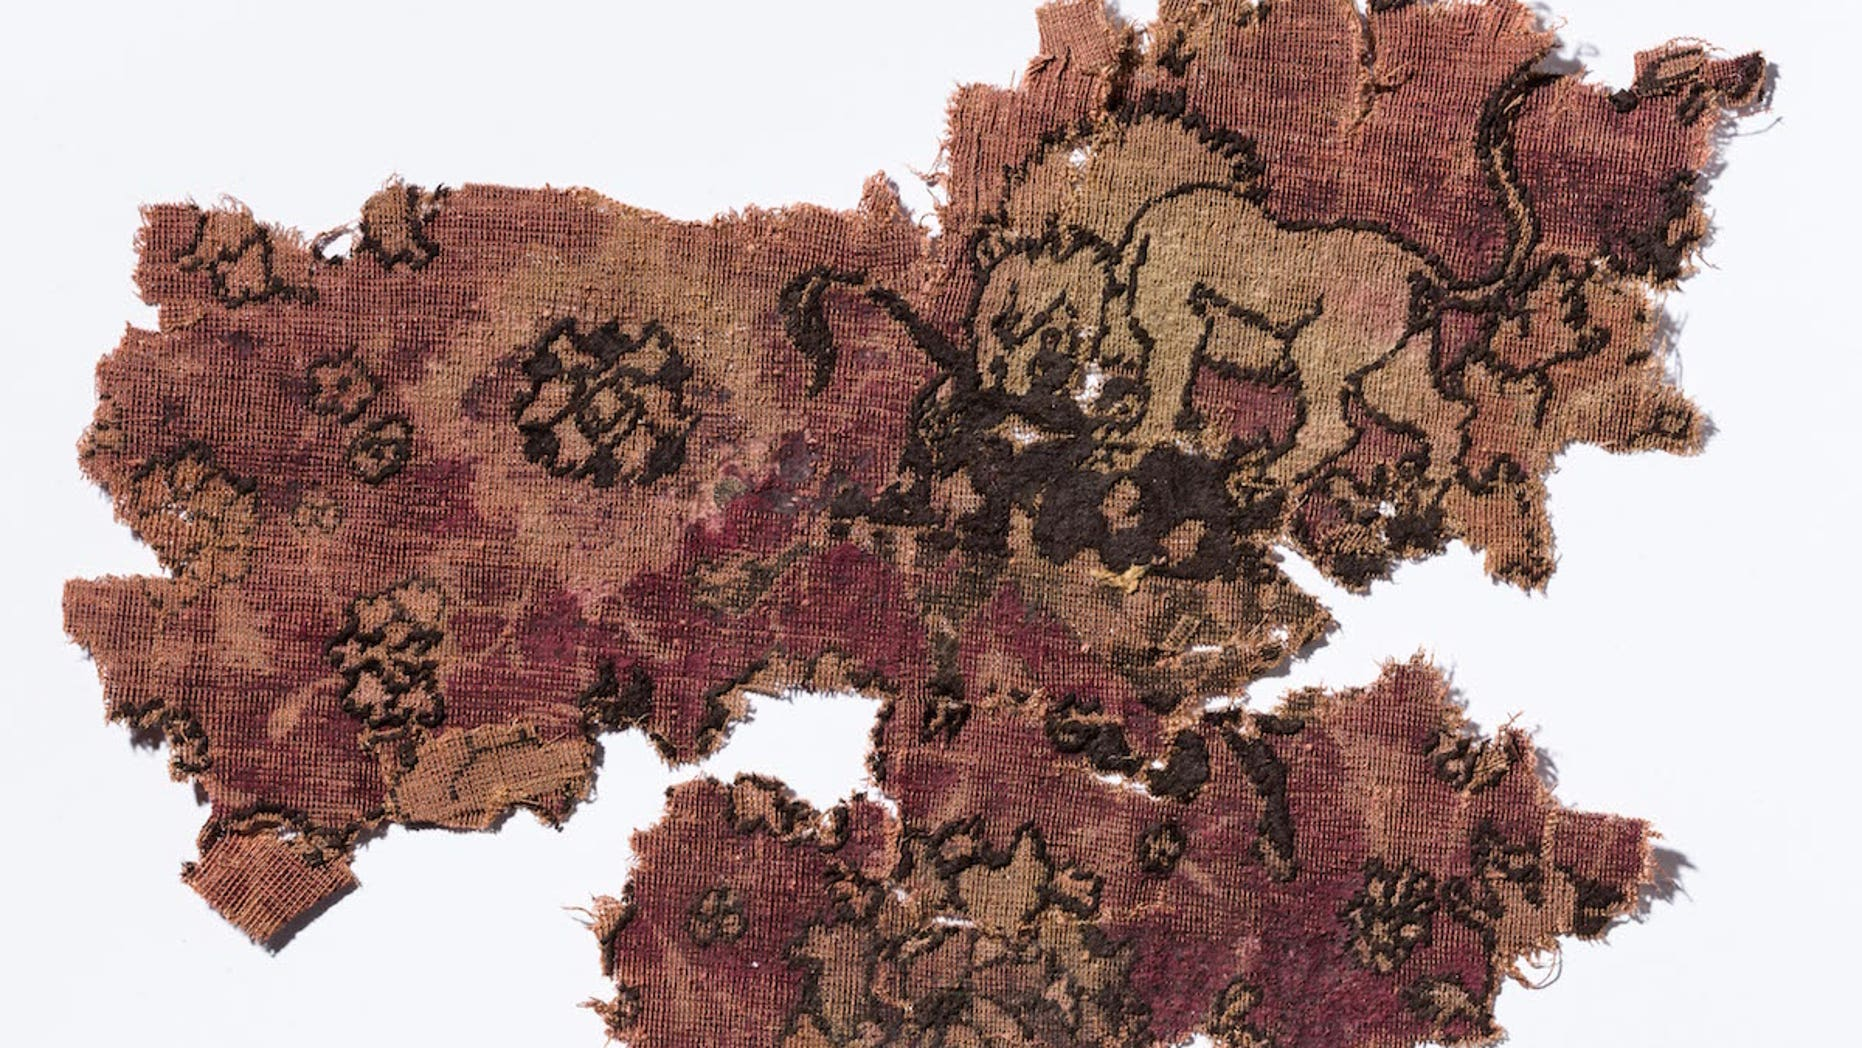 Fragments of carpet were discovered in a 17th-century shipwreck at the bottom of the sea off the coast of the Netherlands.